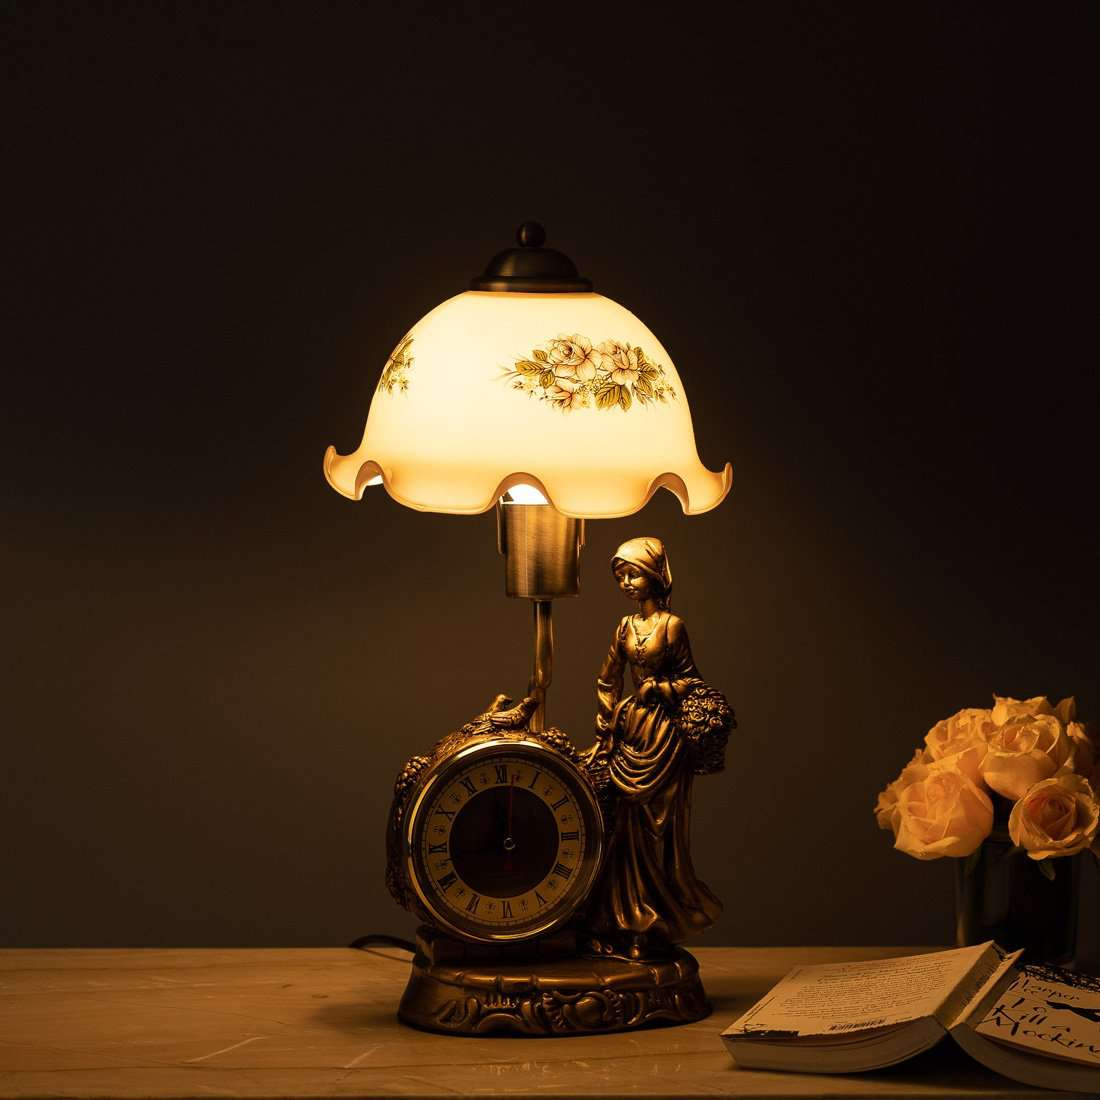 'Olivia' Fenton Lamp w/ Clock & Scalloped Glass Shade